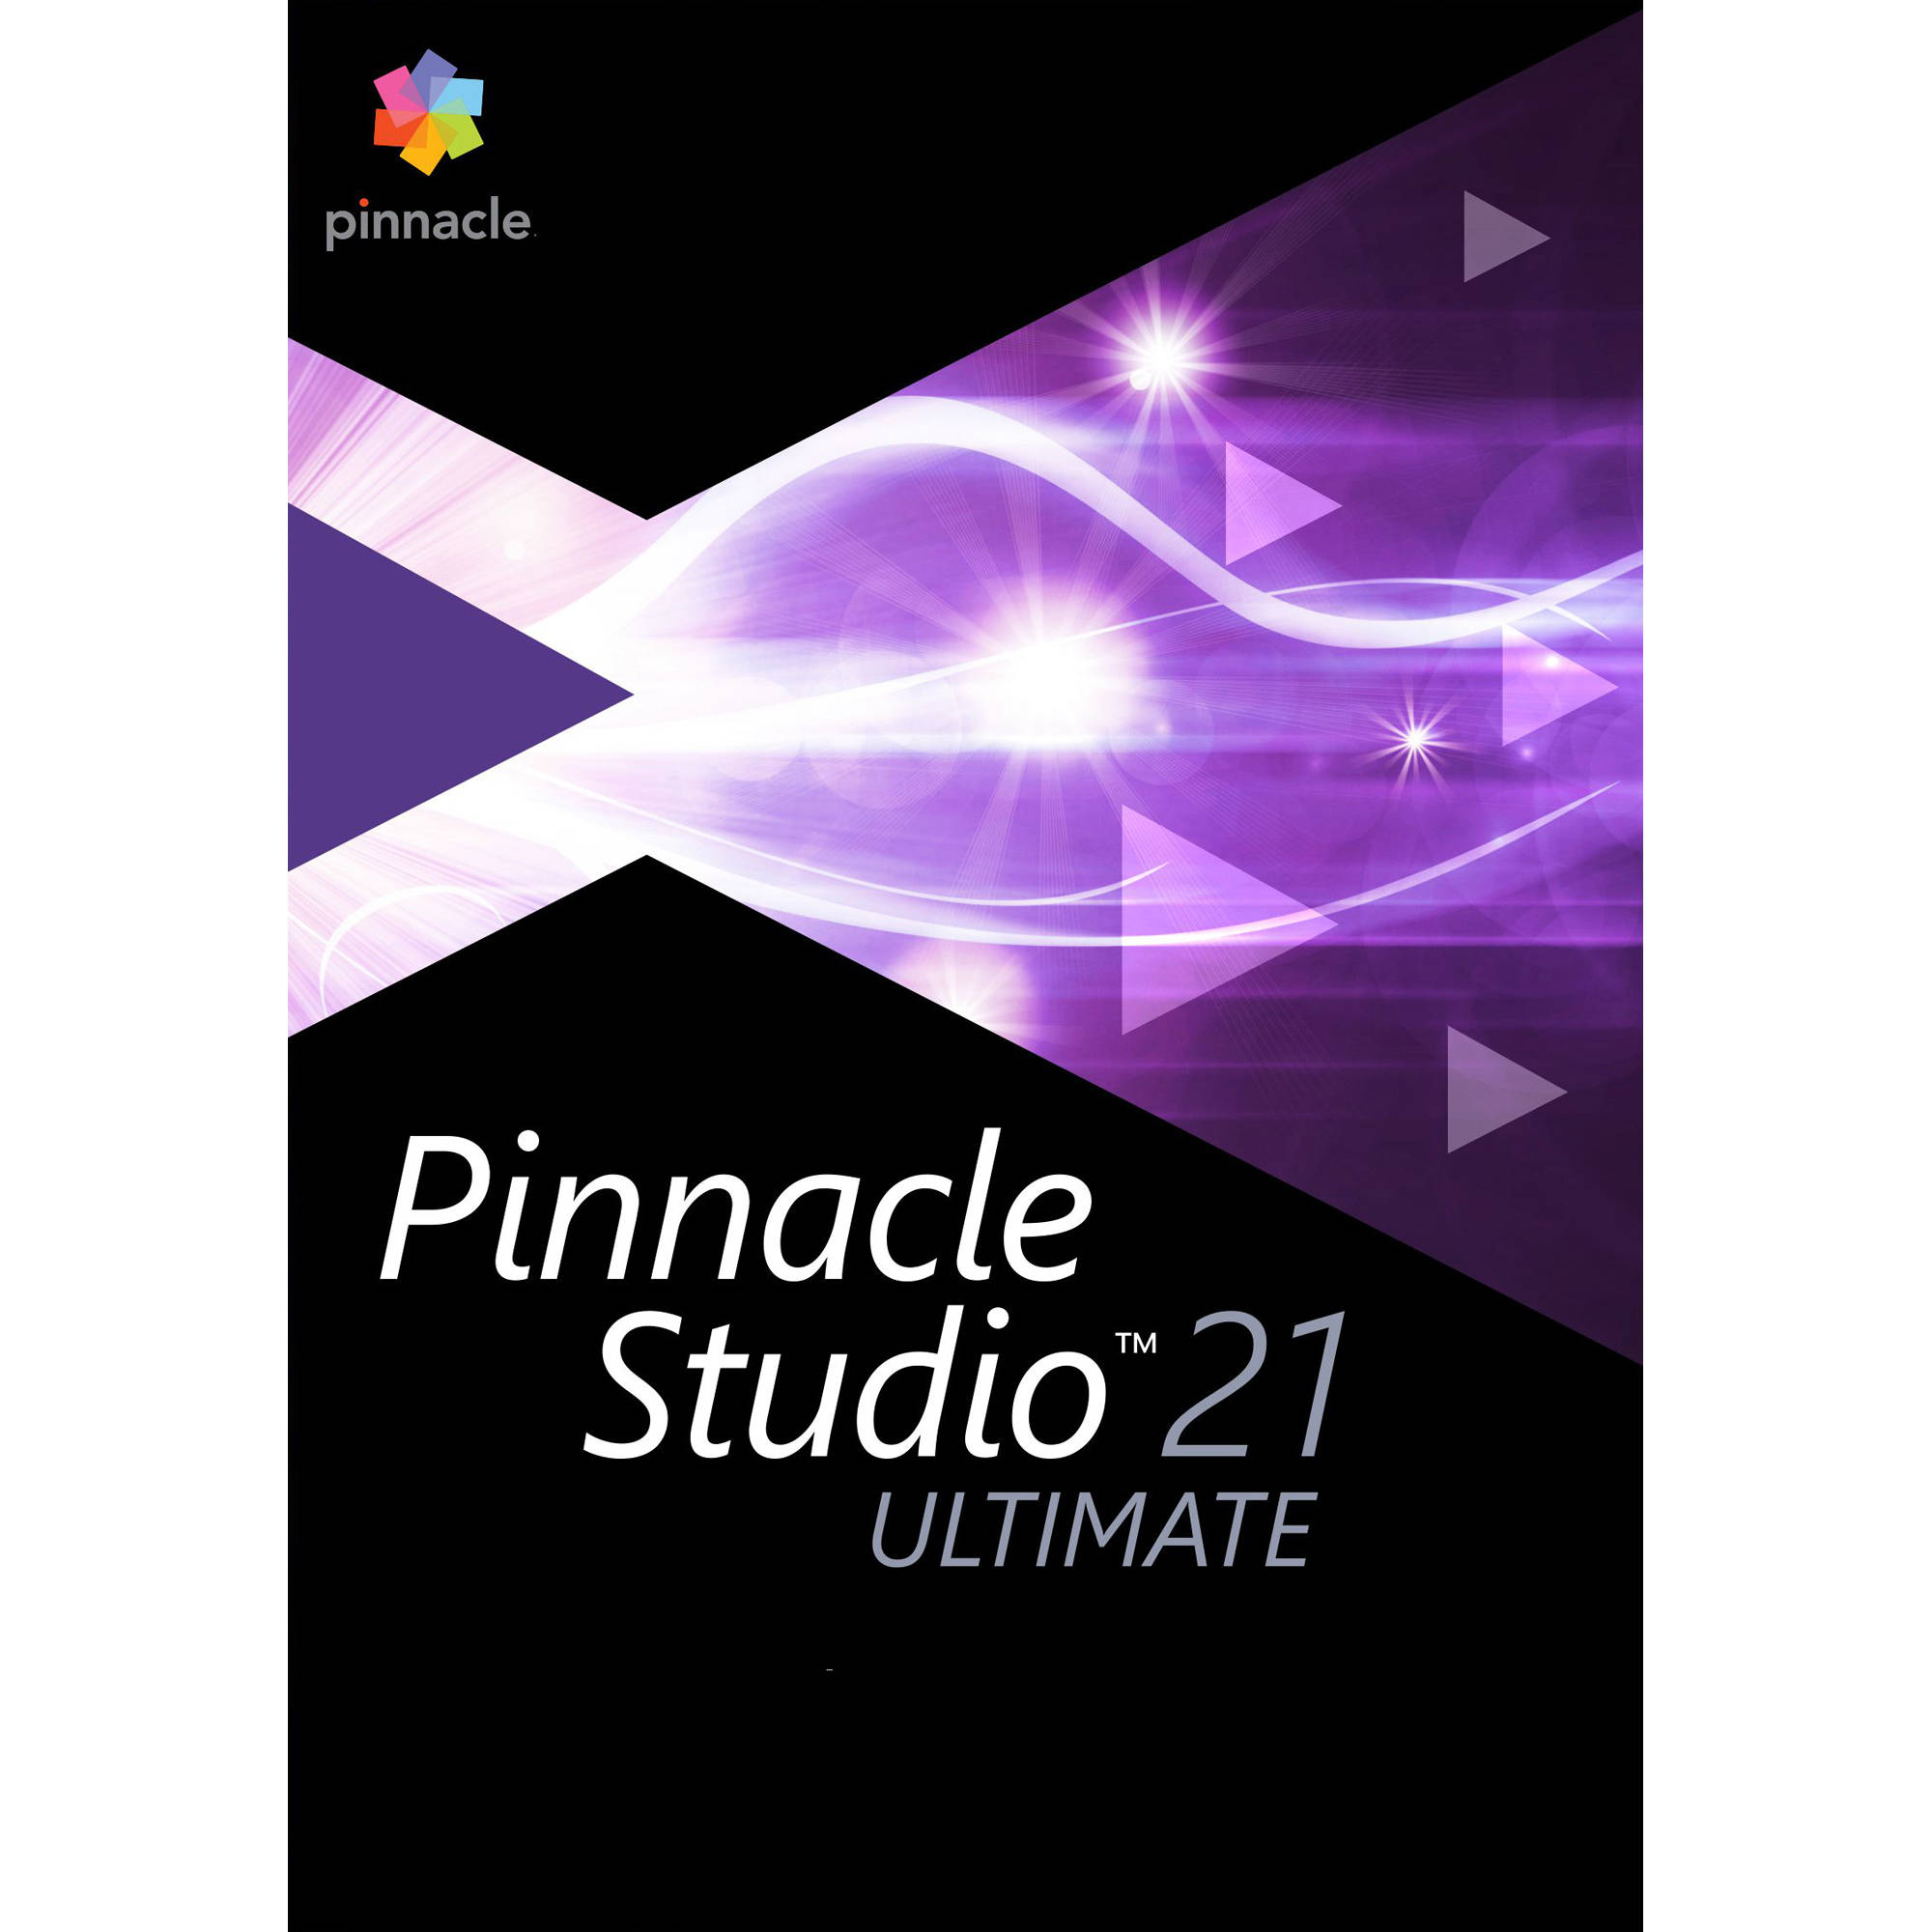 pinnacle studio templates free download.html